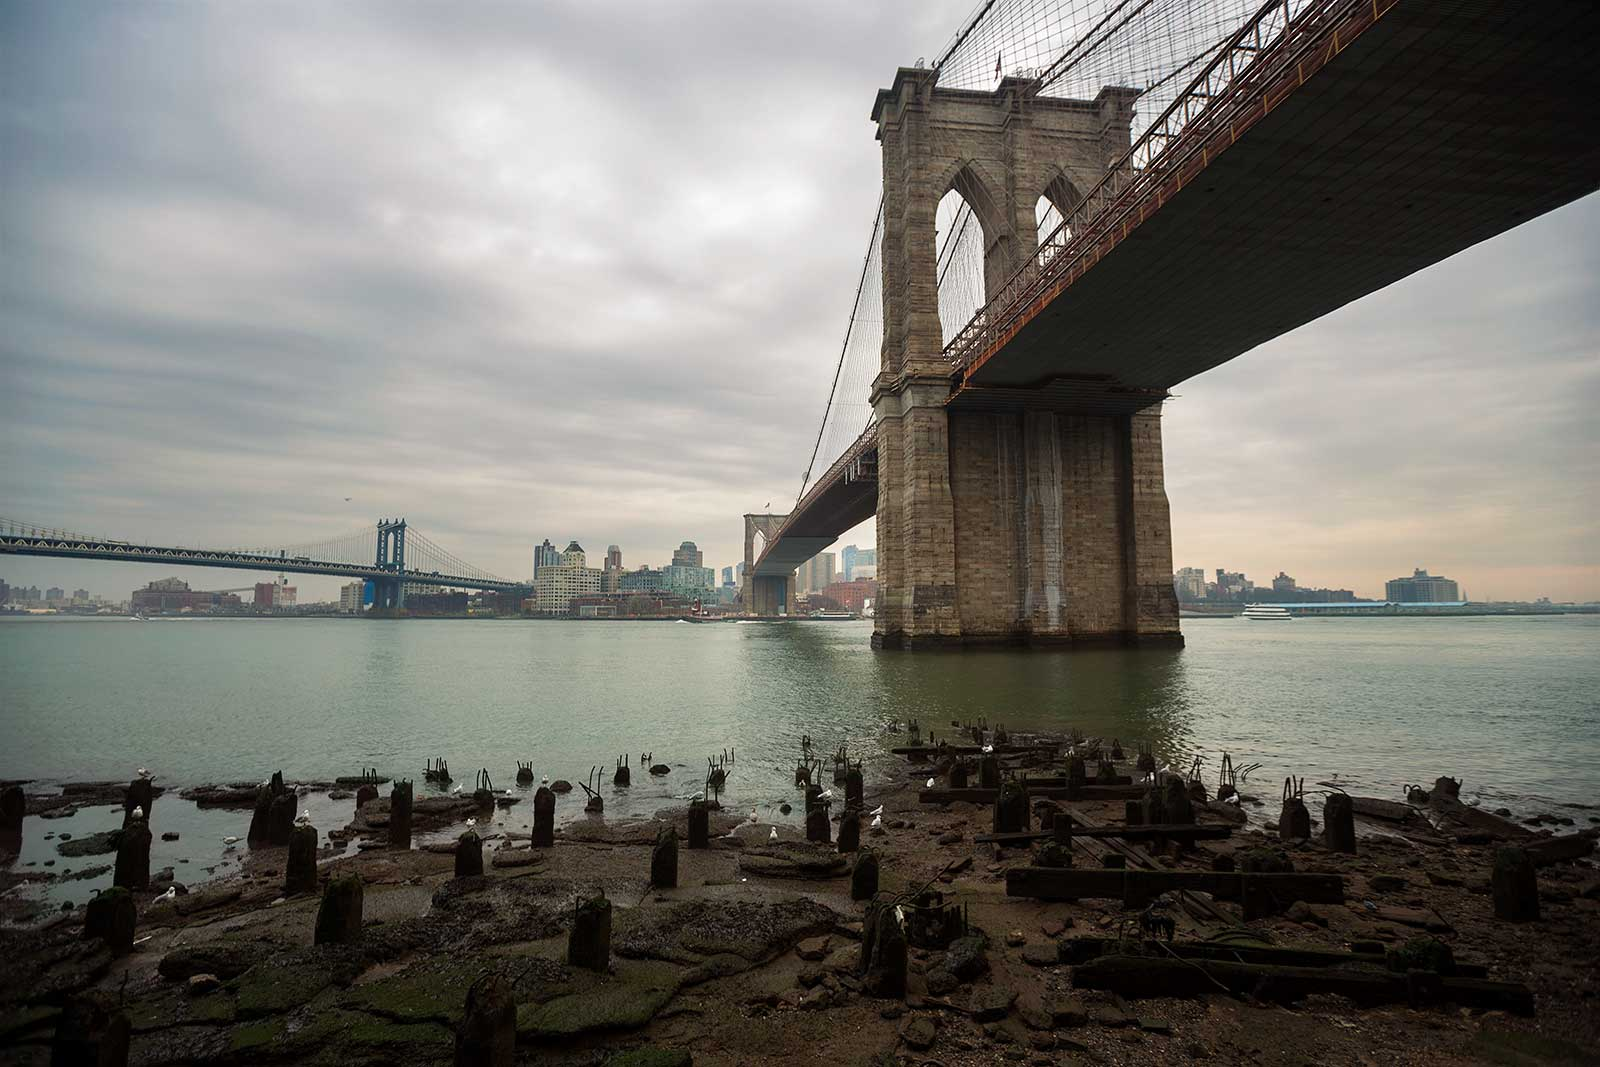 Brooklyn Bridge is one of the oldest of its kind in the United States and an iconic landmark of New York City.